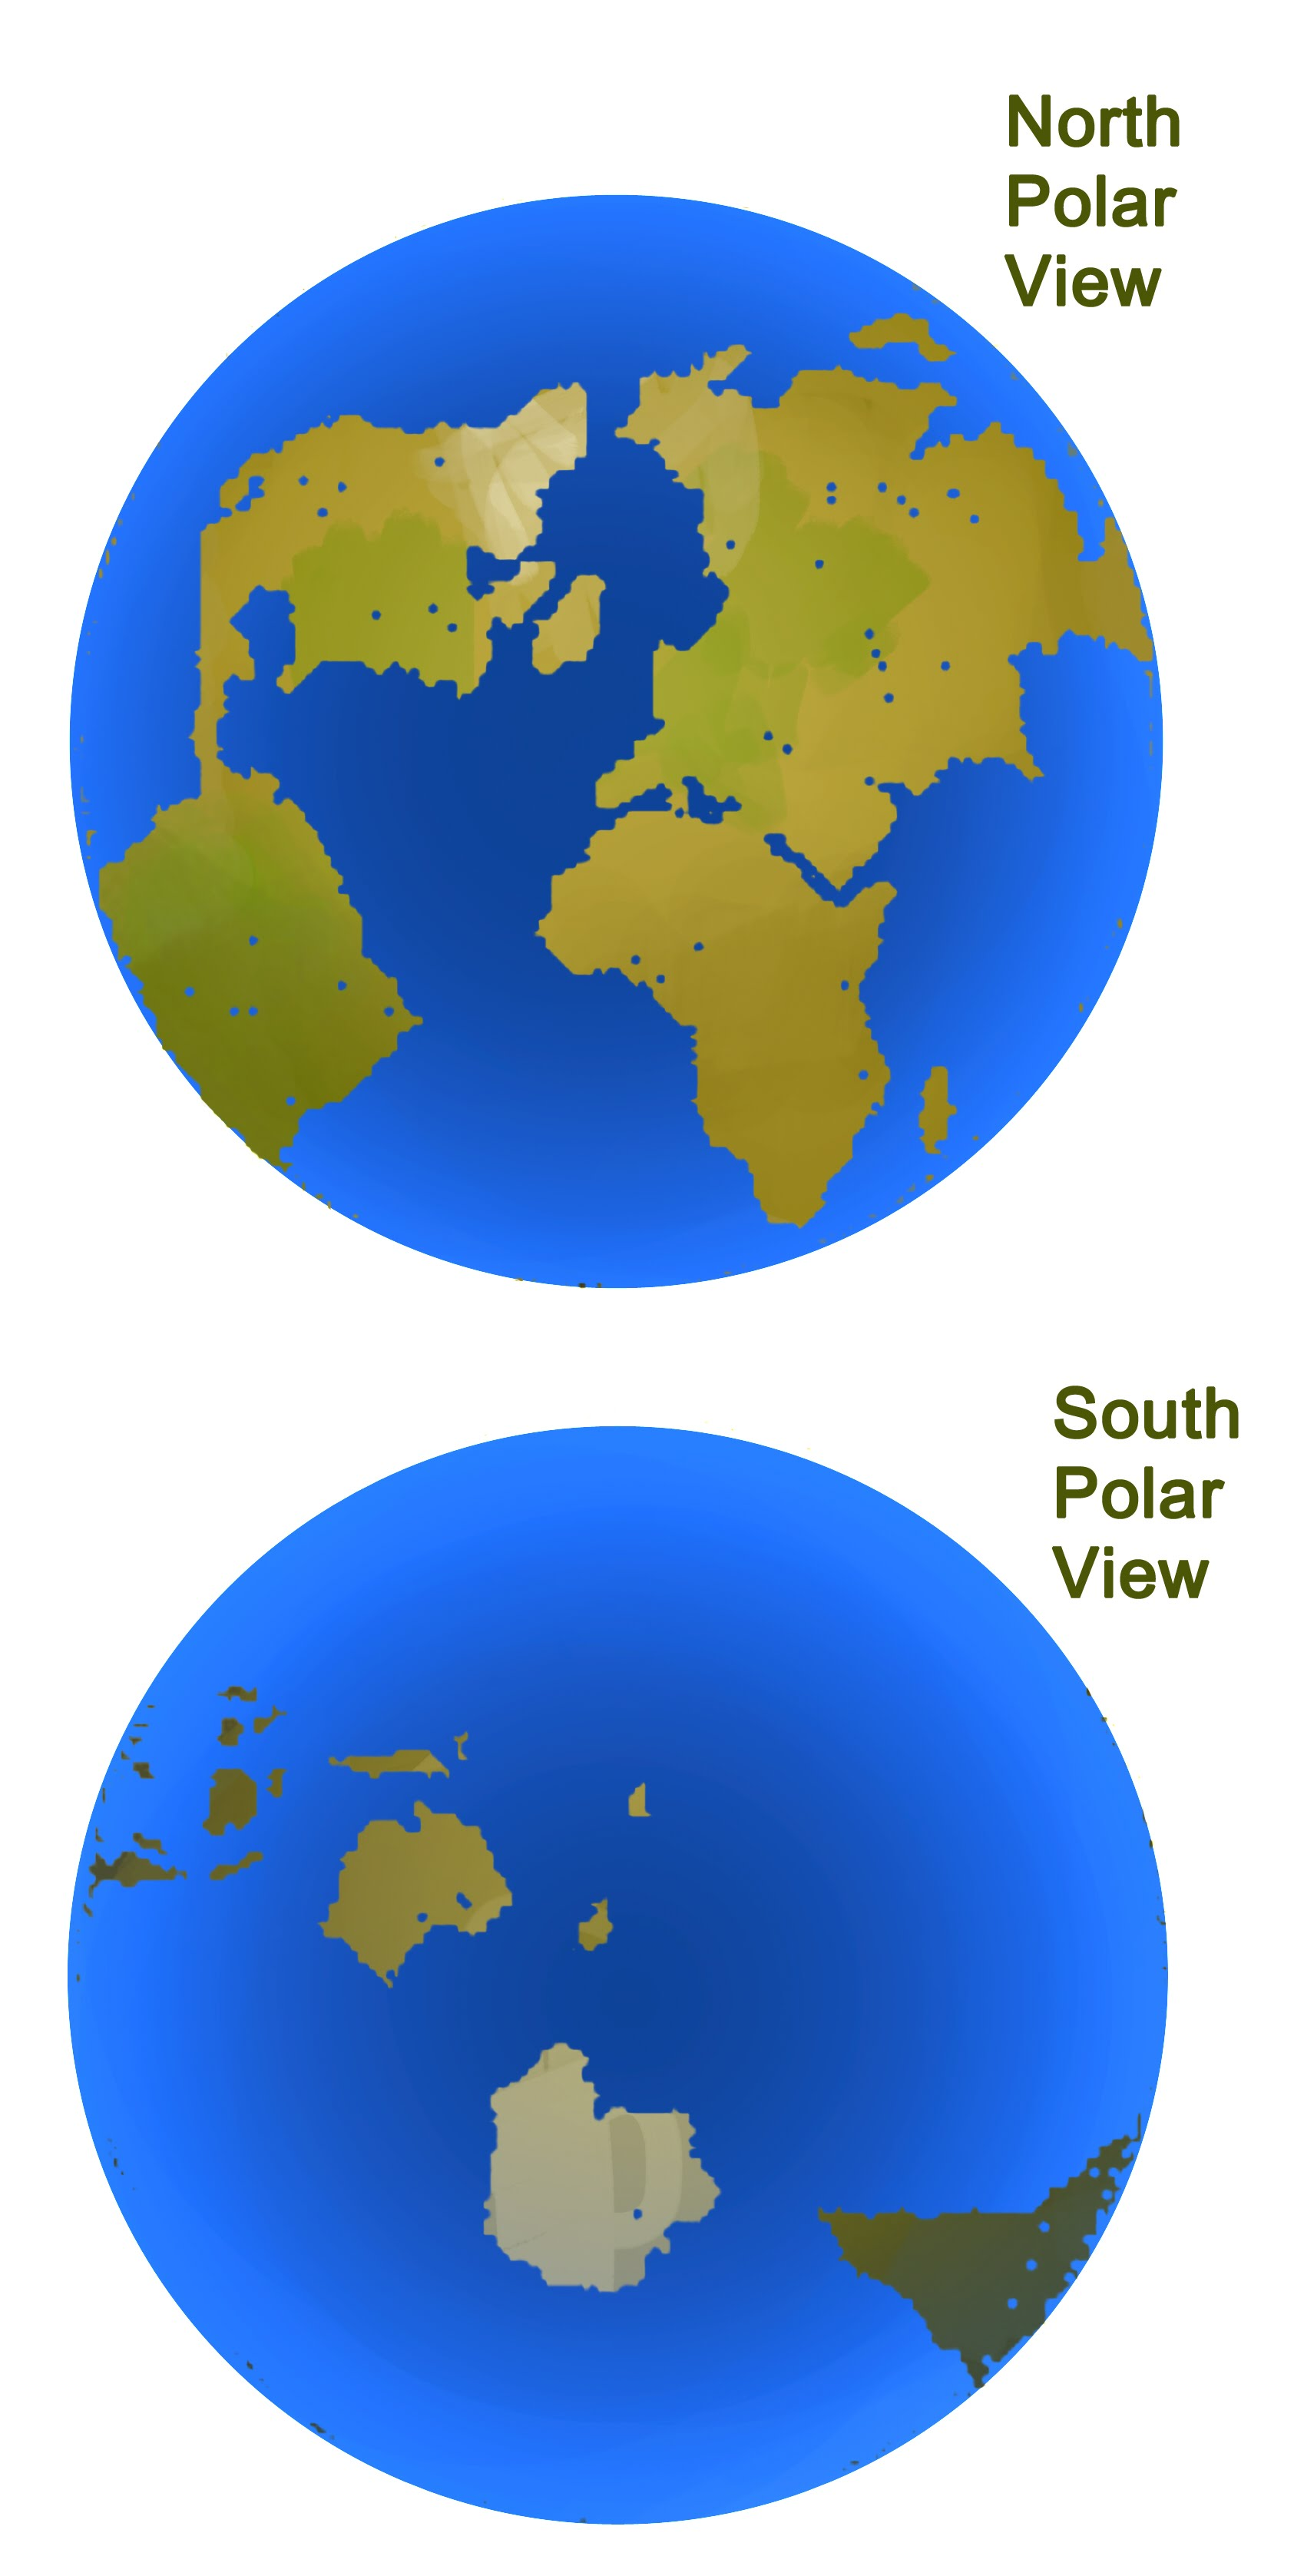 Views of the North and South poles